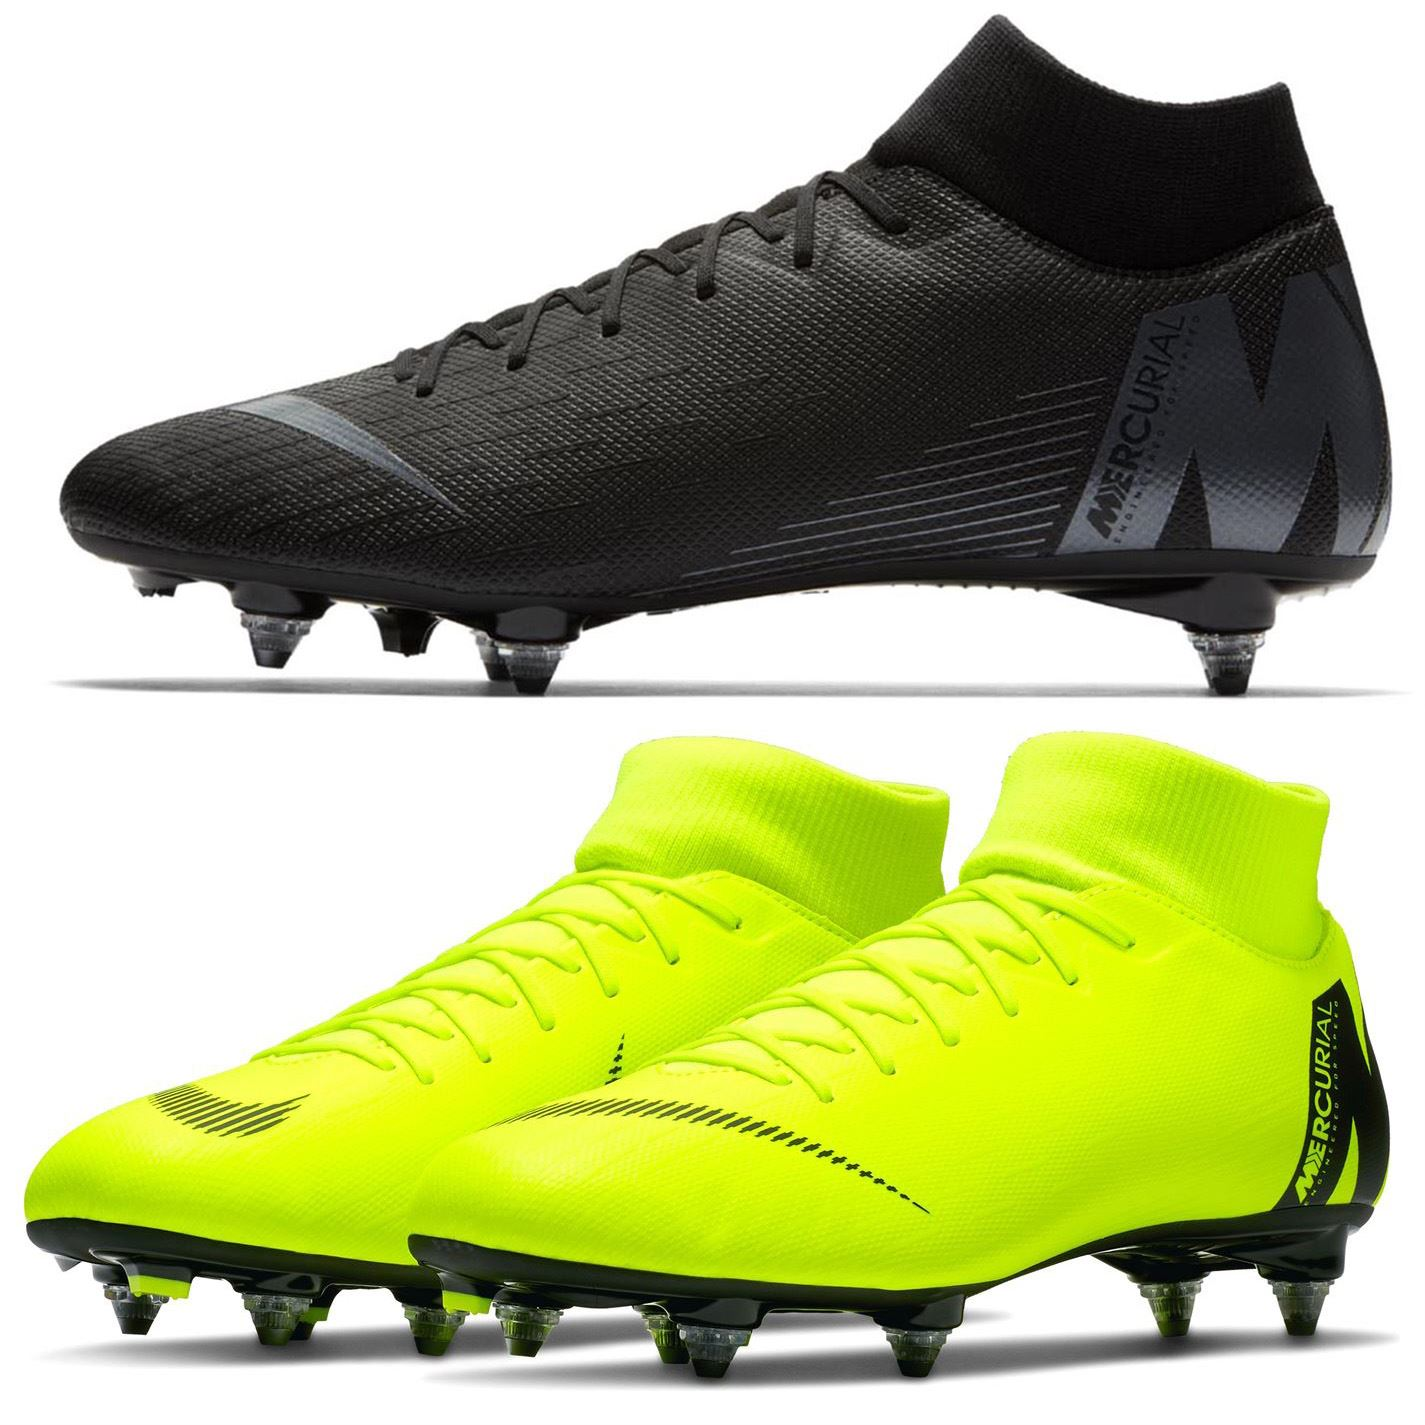 7dbc778e4637 Details about Nike Mercurial Superfly Academy DF Soft Ground Football Boots  Mens Soccer Cleats